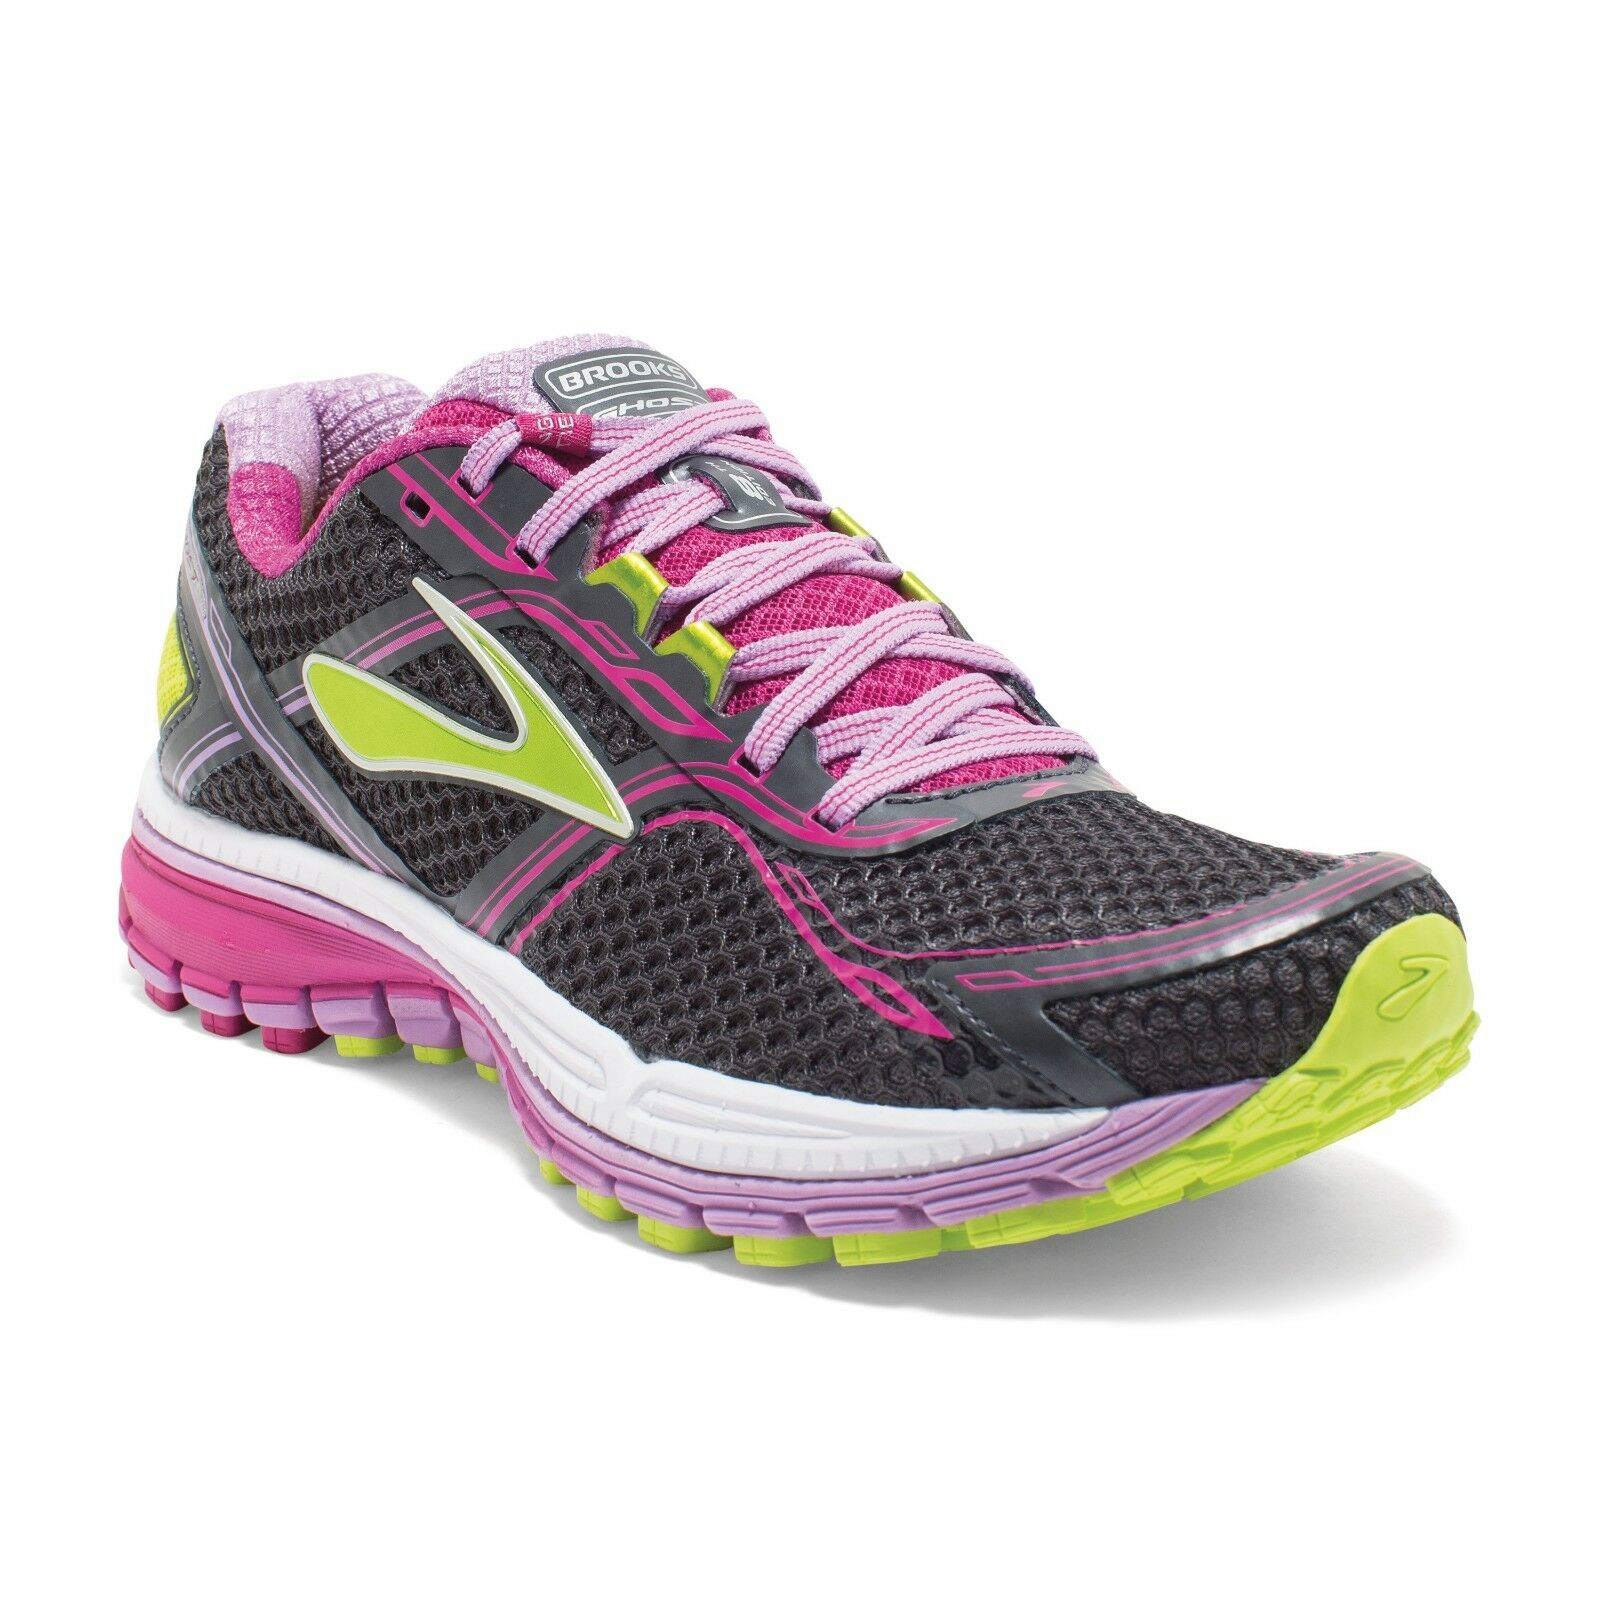 Brooks shoes women ghost 8 model